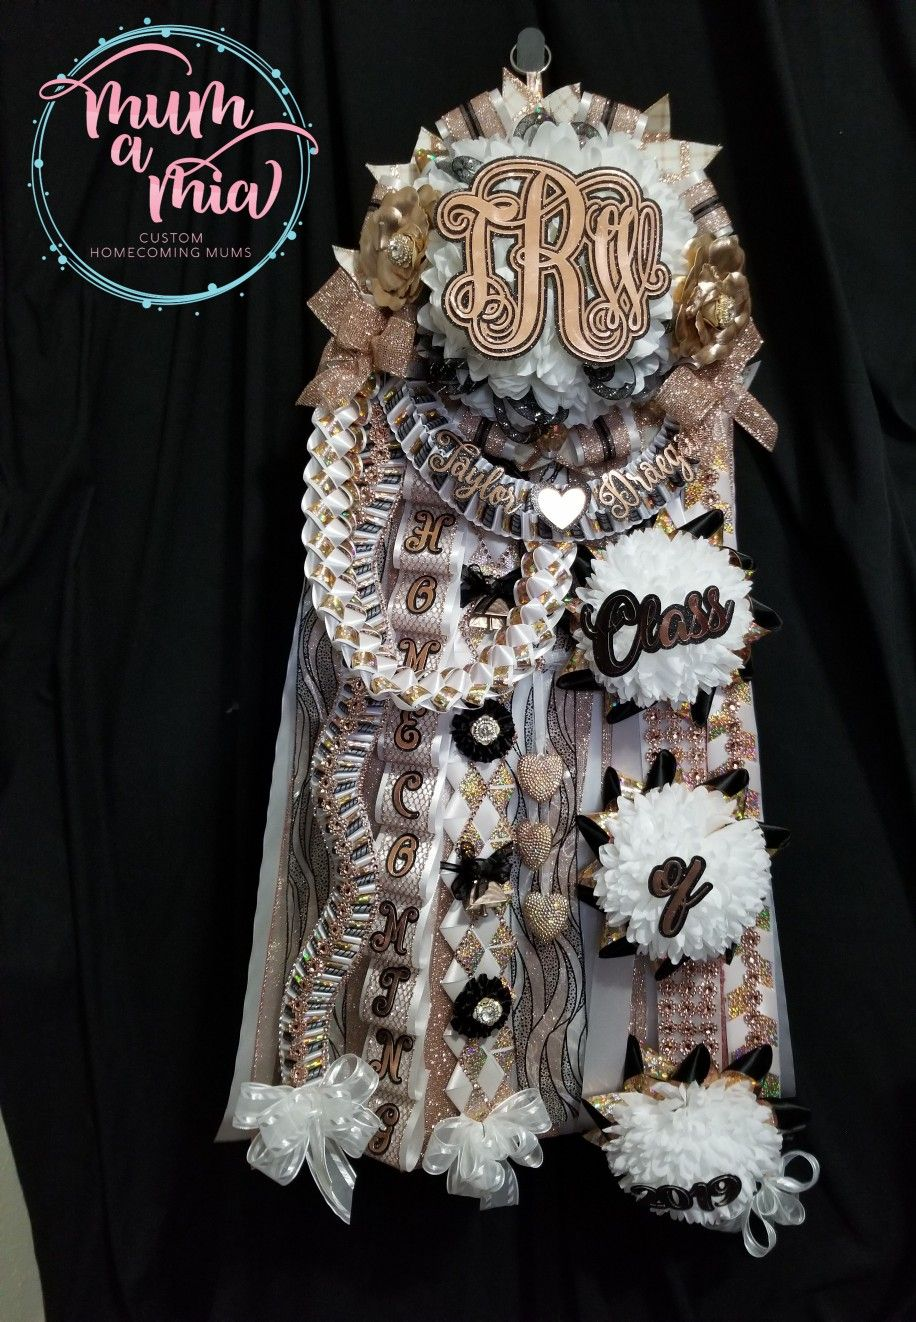 Rose gold mega Homecoming mum. We are located in Cypress, TX and ship nationwide. 832-231-8628 www.mumamia.com